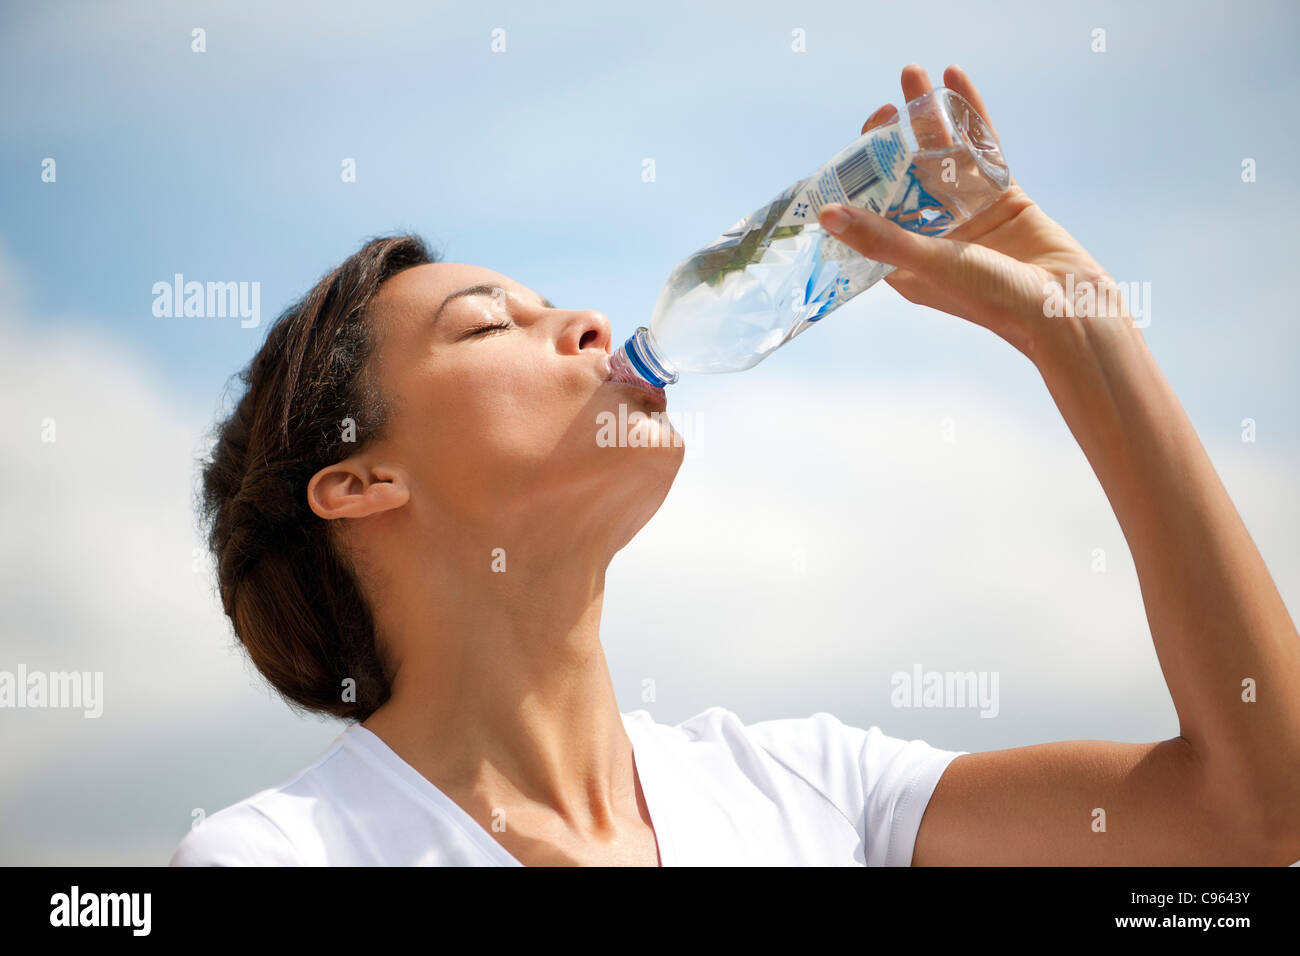 Woman drinking bottled water. - Stock Image